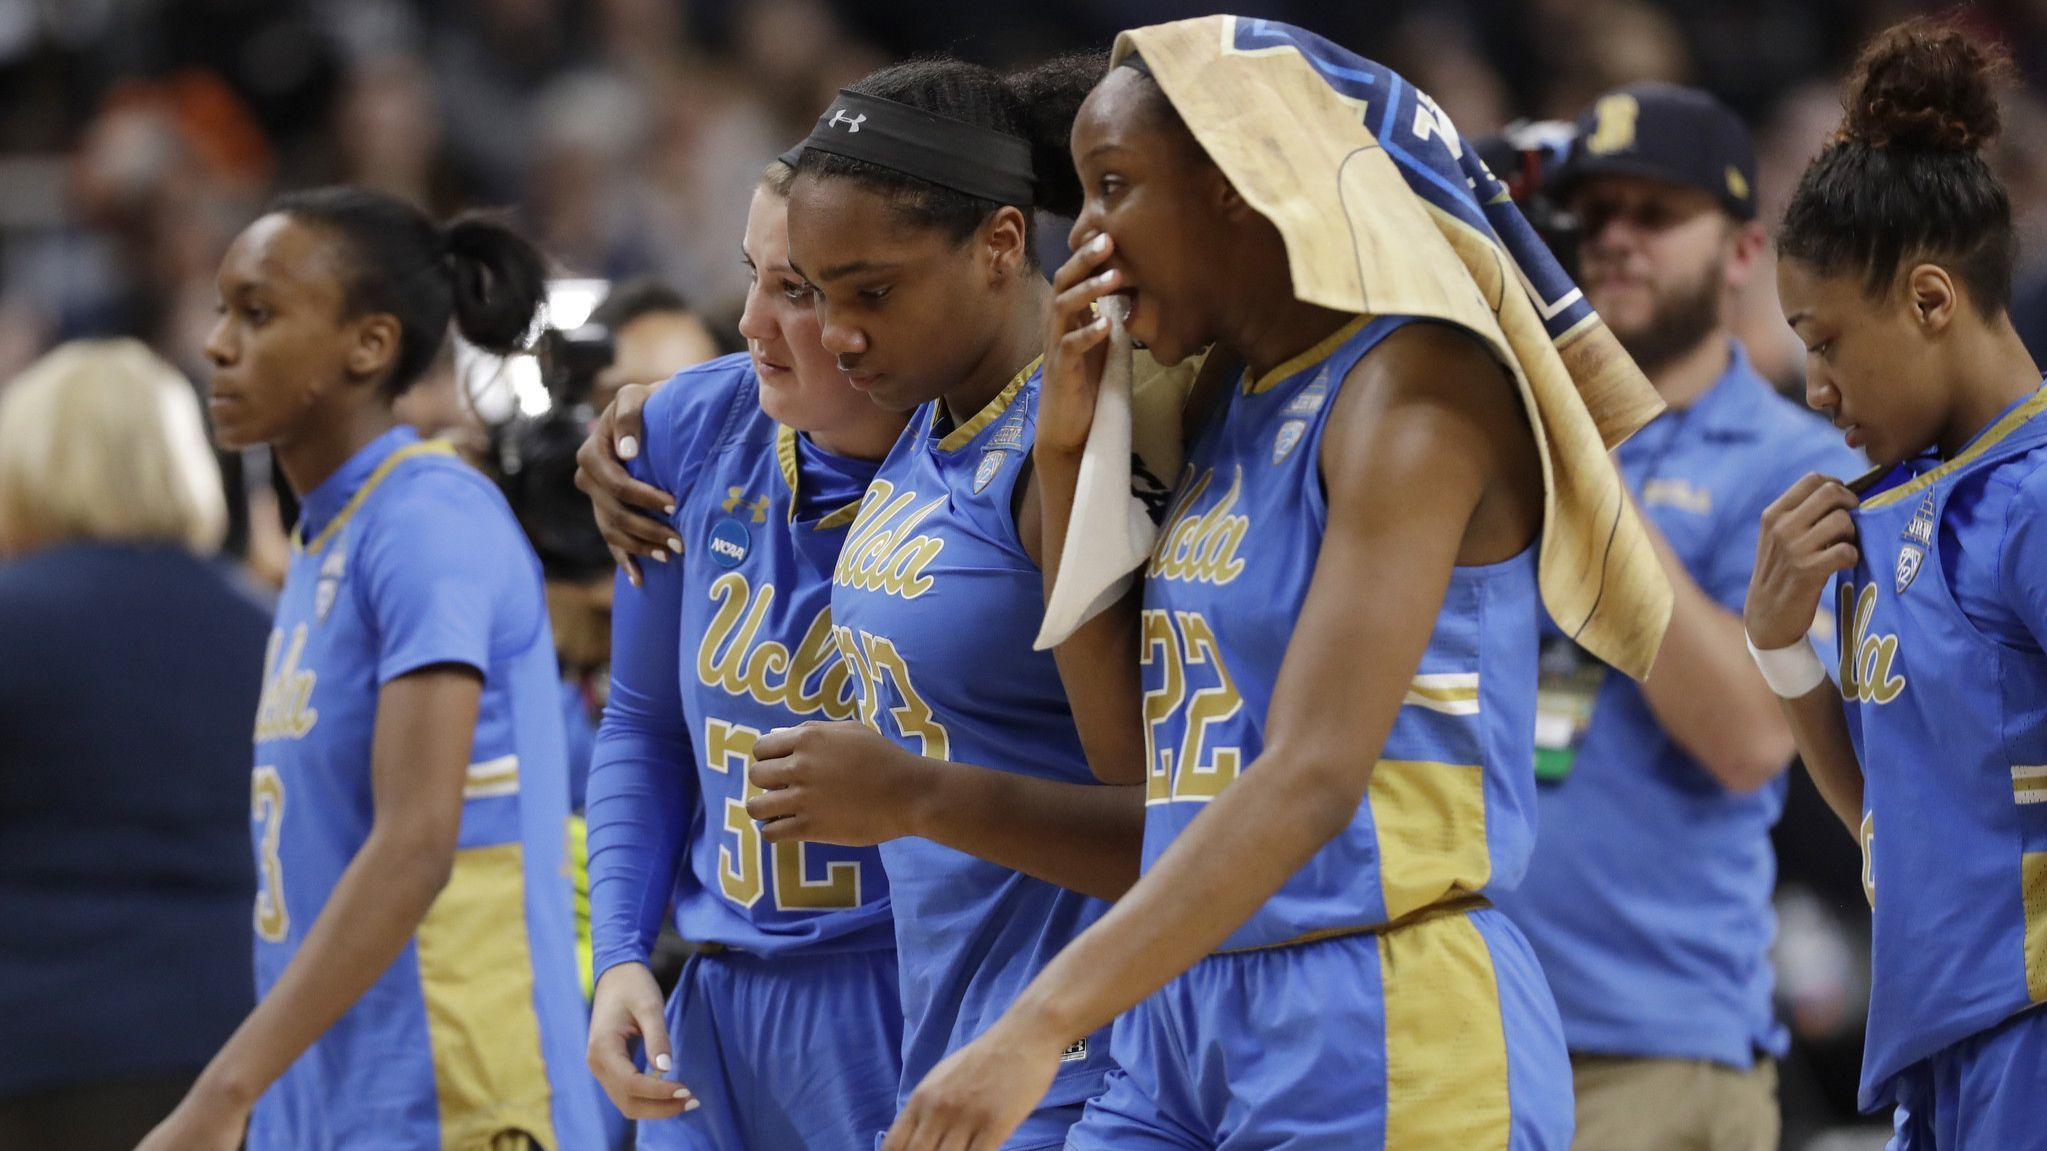 The Sports Report: UCLA's run comes to an end